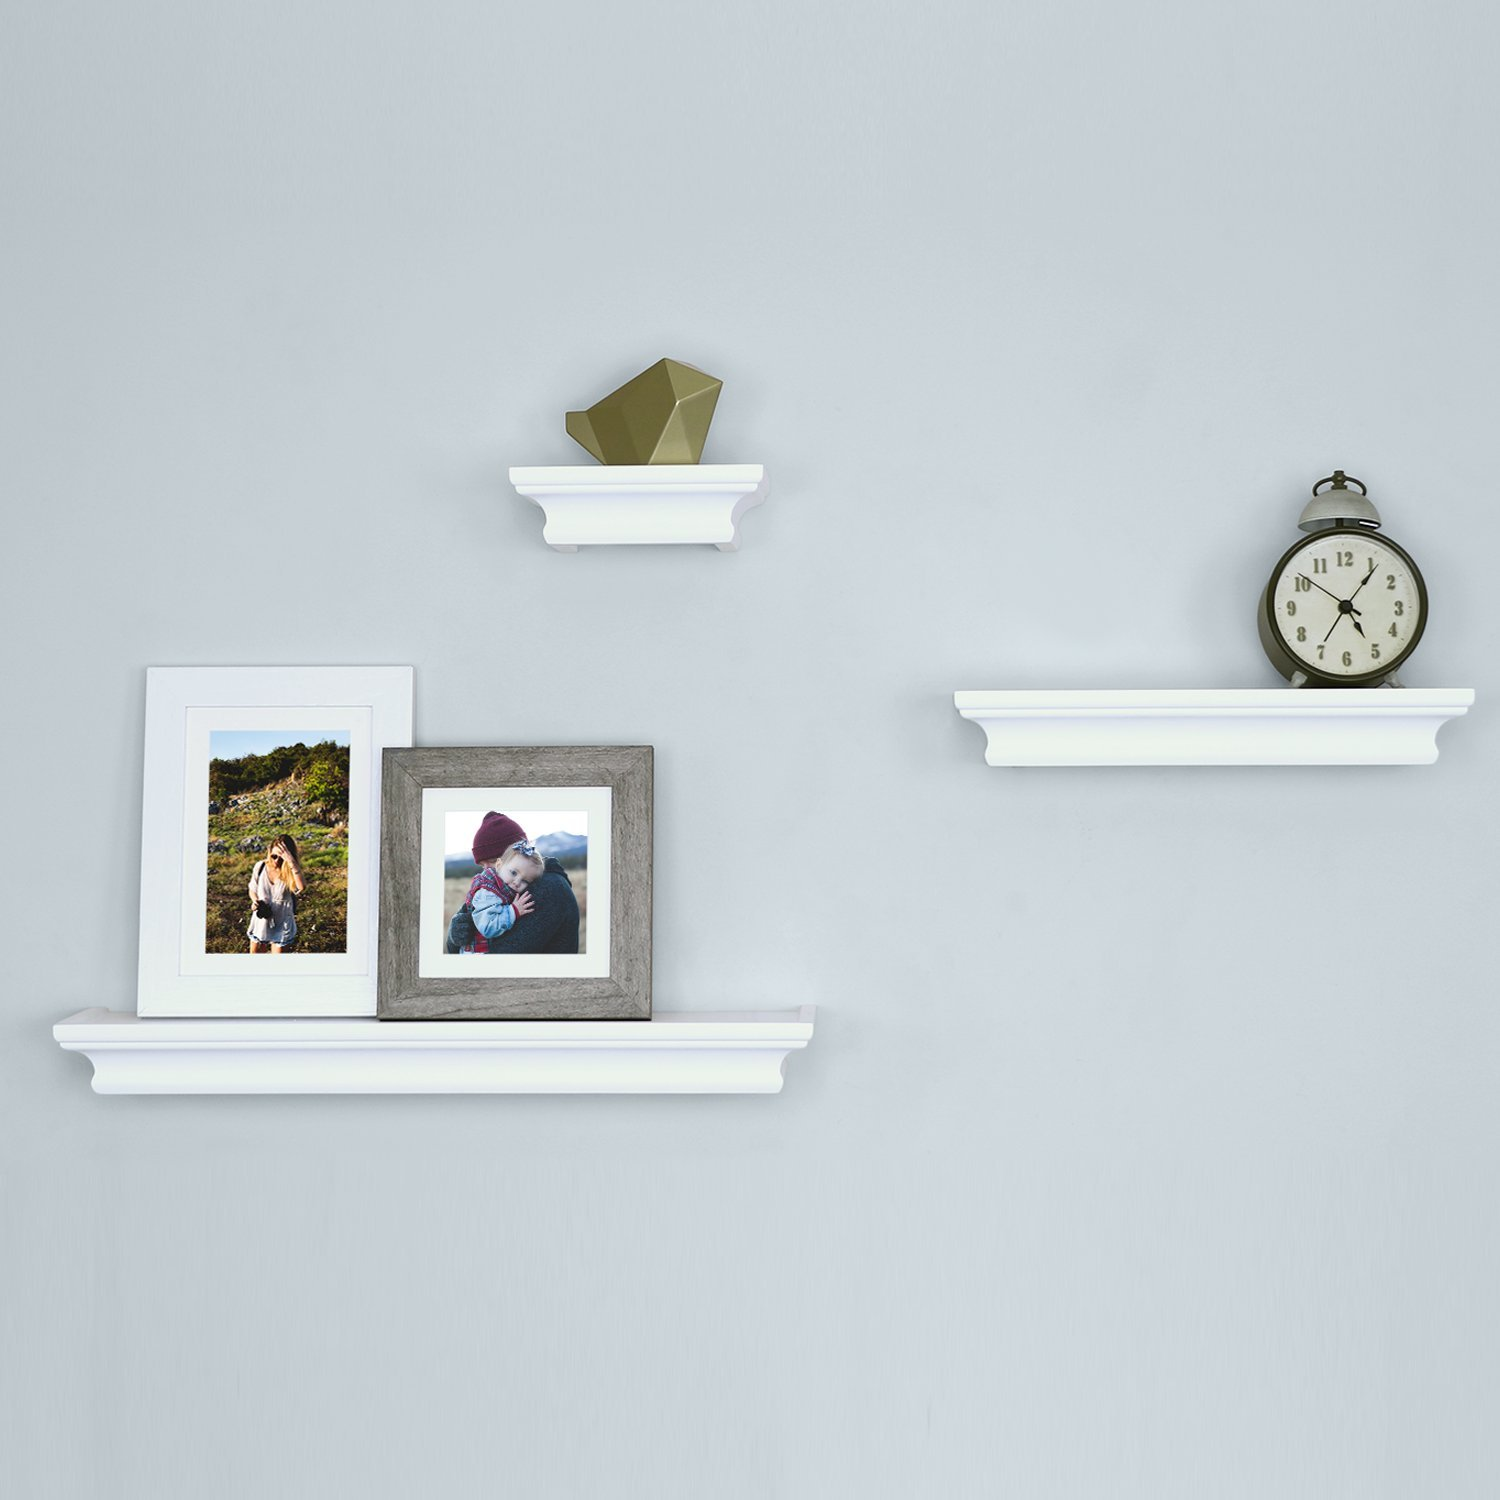 Ballucci Classic Floating Wall Shelves Ledge, Set of 3, White